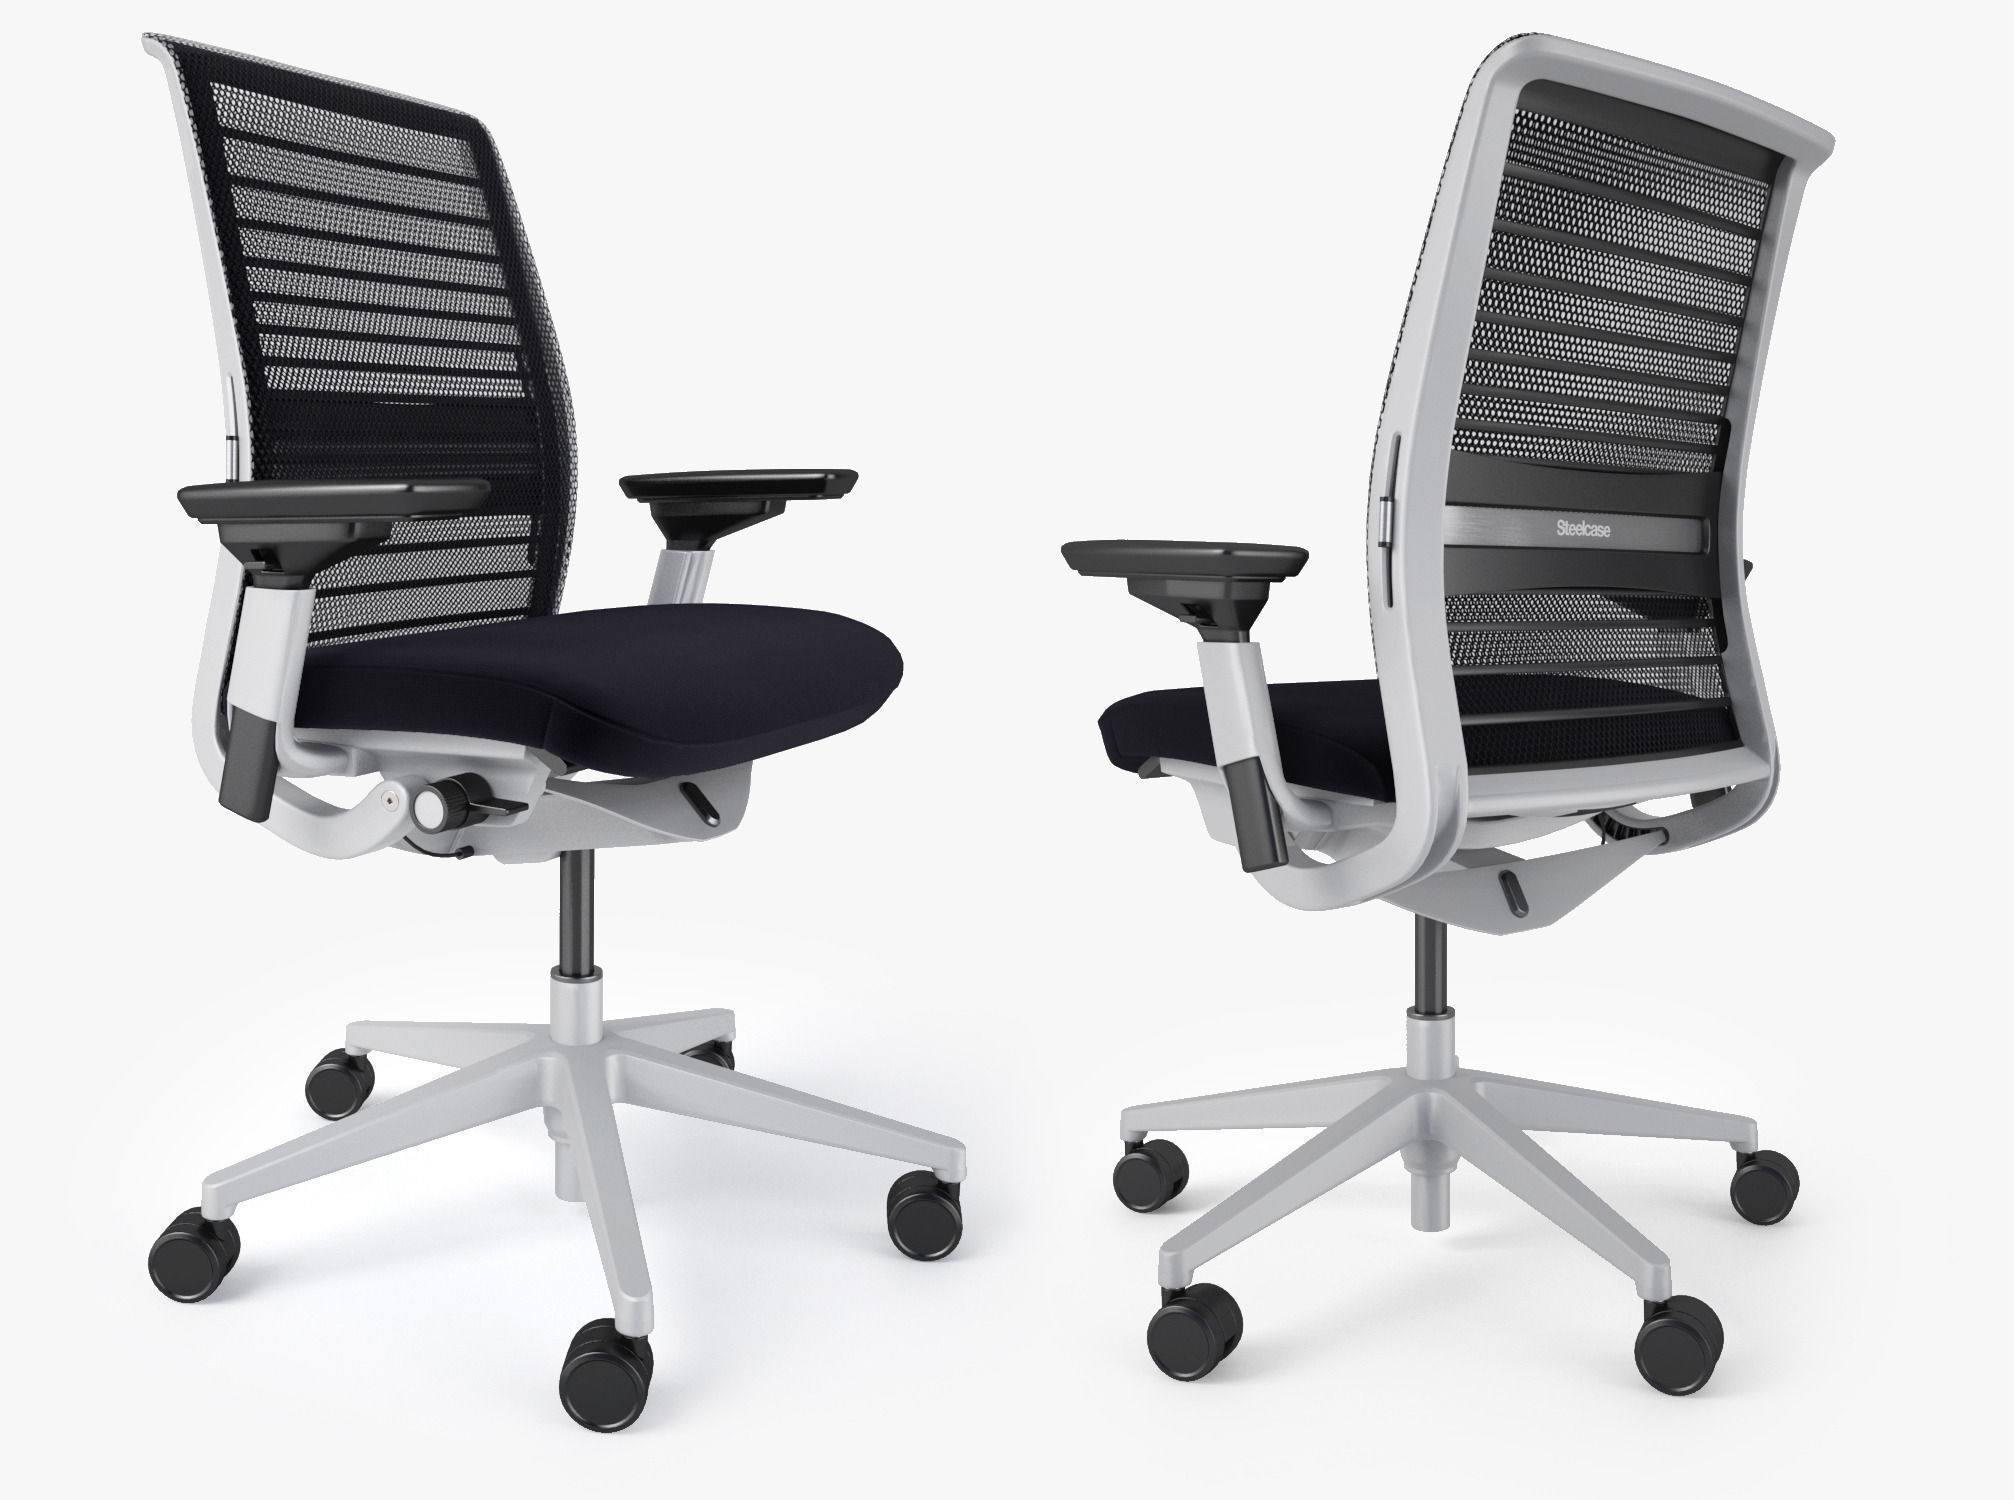 Steelcase Desk Chair Steelcase Think Office Chair 3d Model Max Obj Fbx Mtl